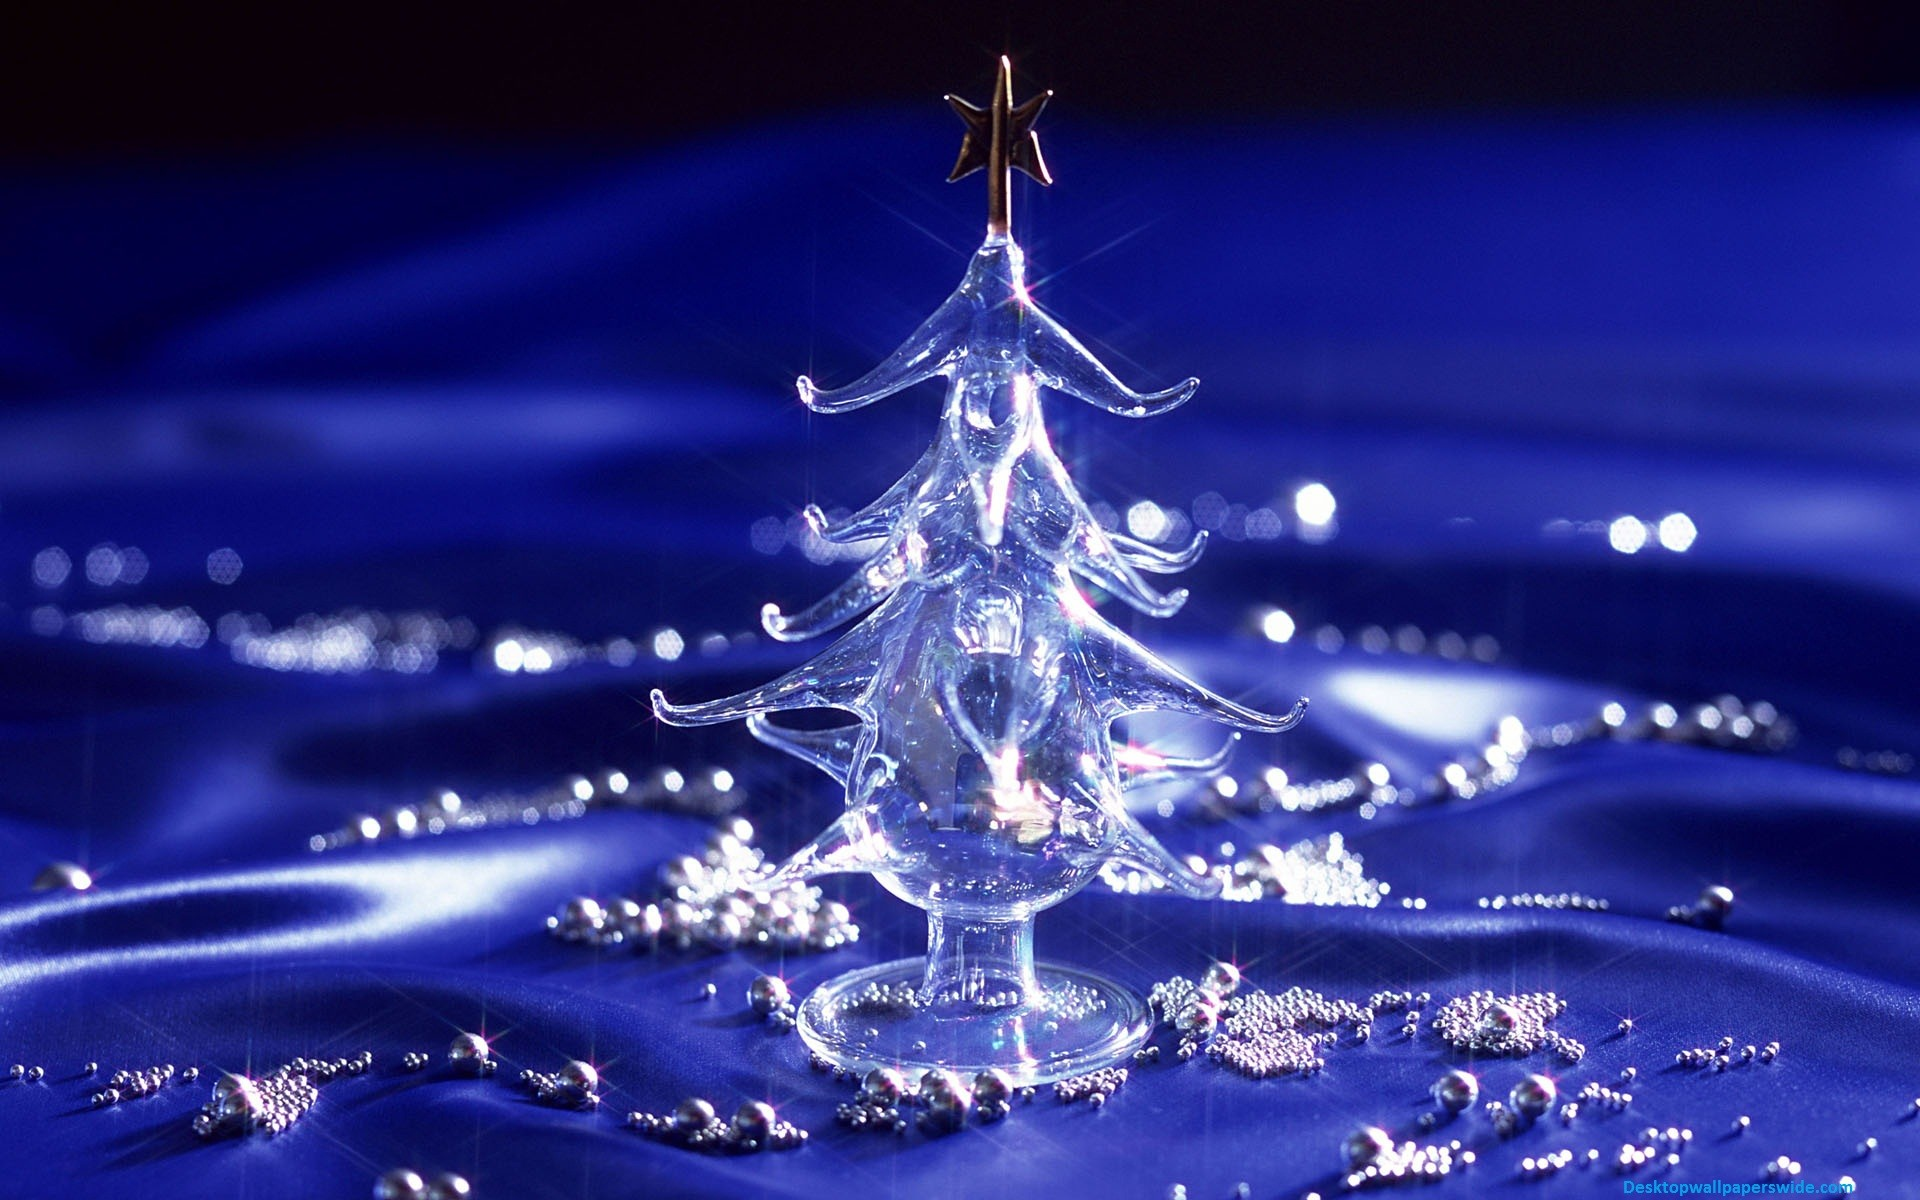 Christmas Hd Wallpapers 1080p.Christmas Hd Wallpapers 89 Background Pictures